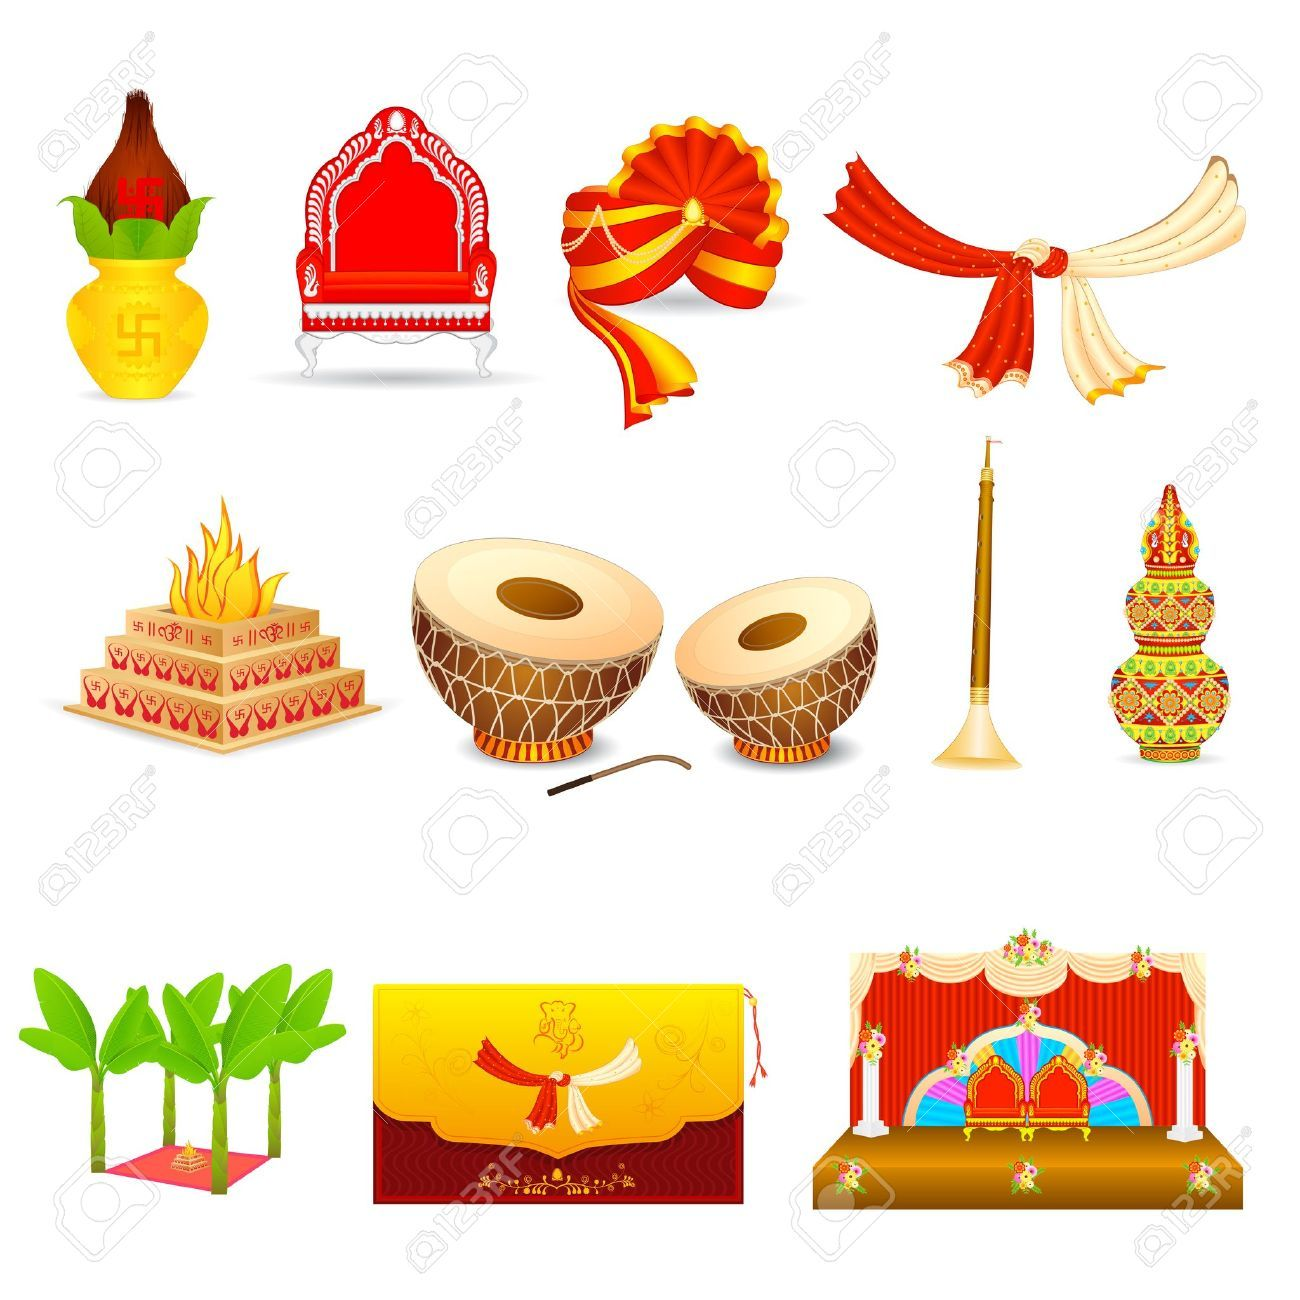 hight resolution of indian wedding cliparts clipart collection